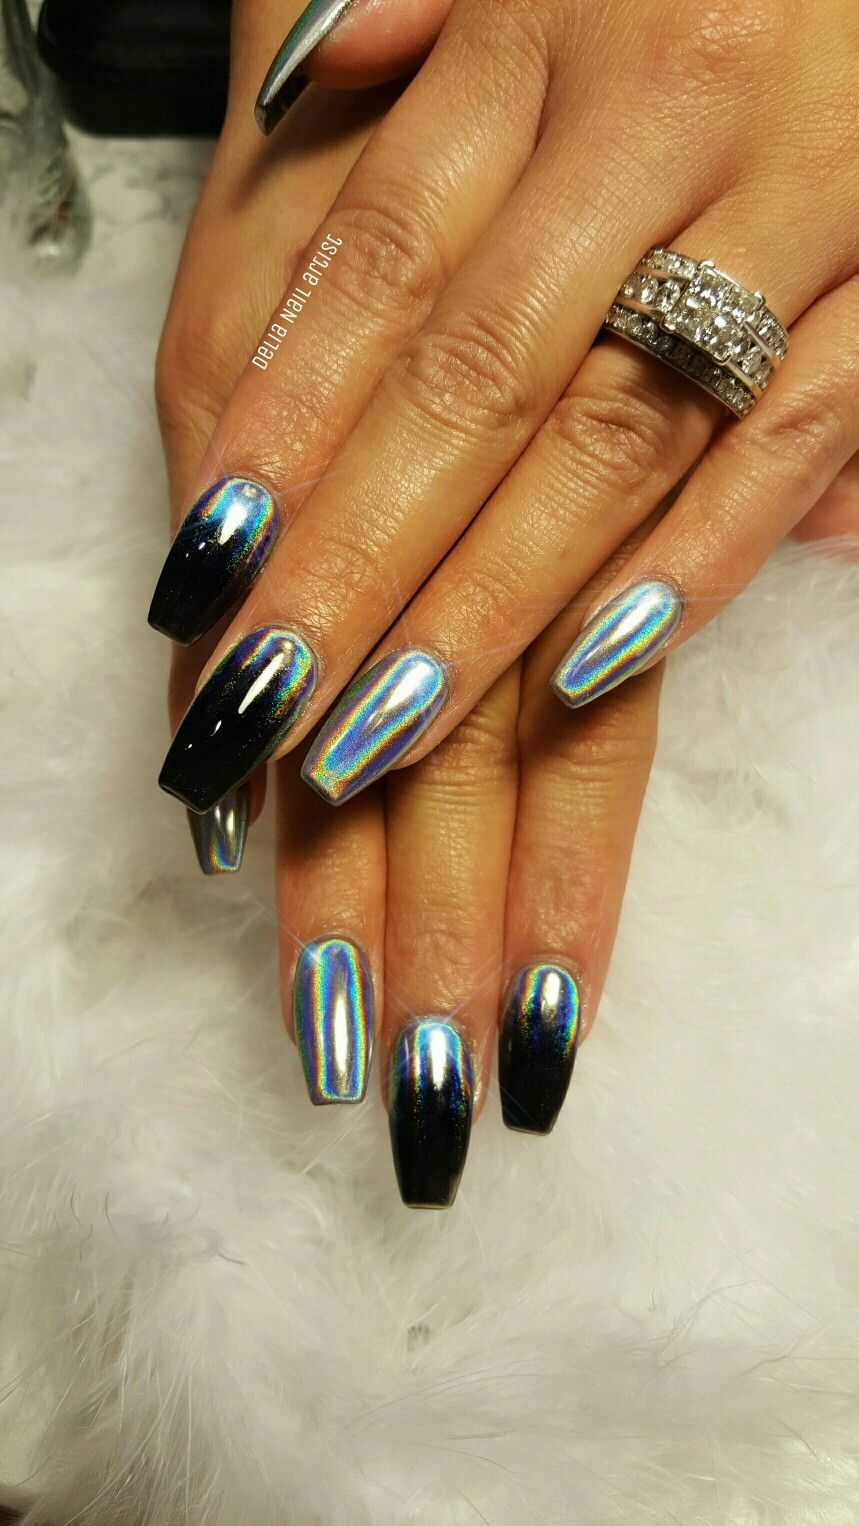 acrylics nails holo pigment nails nagellack kunst. Black Bedroom Furniture Sets. Home Design Ideas